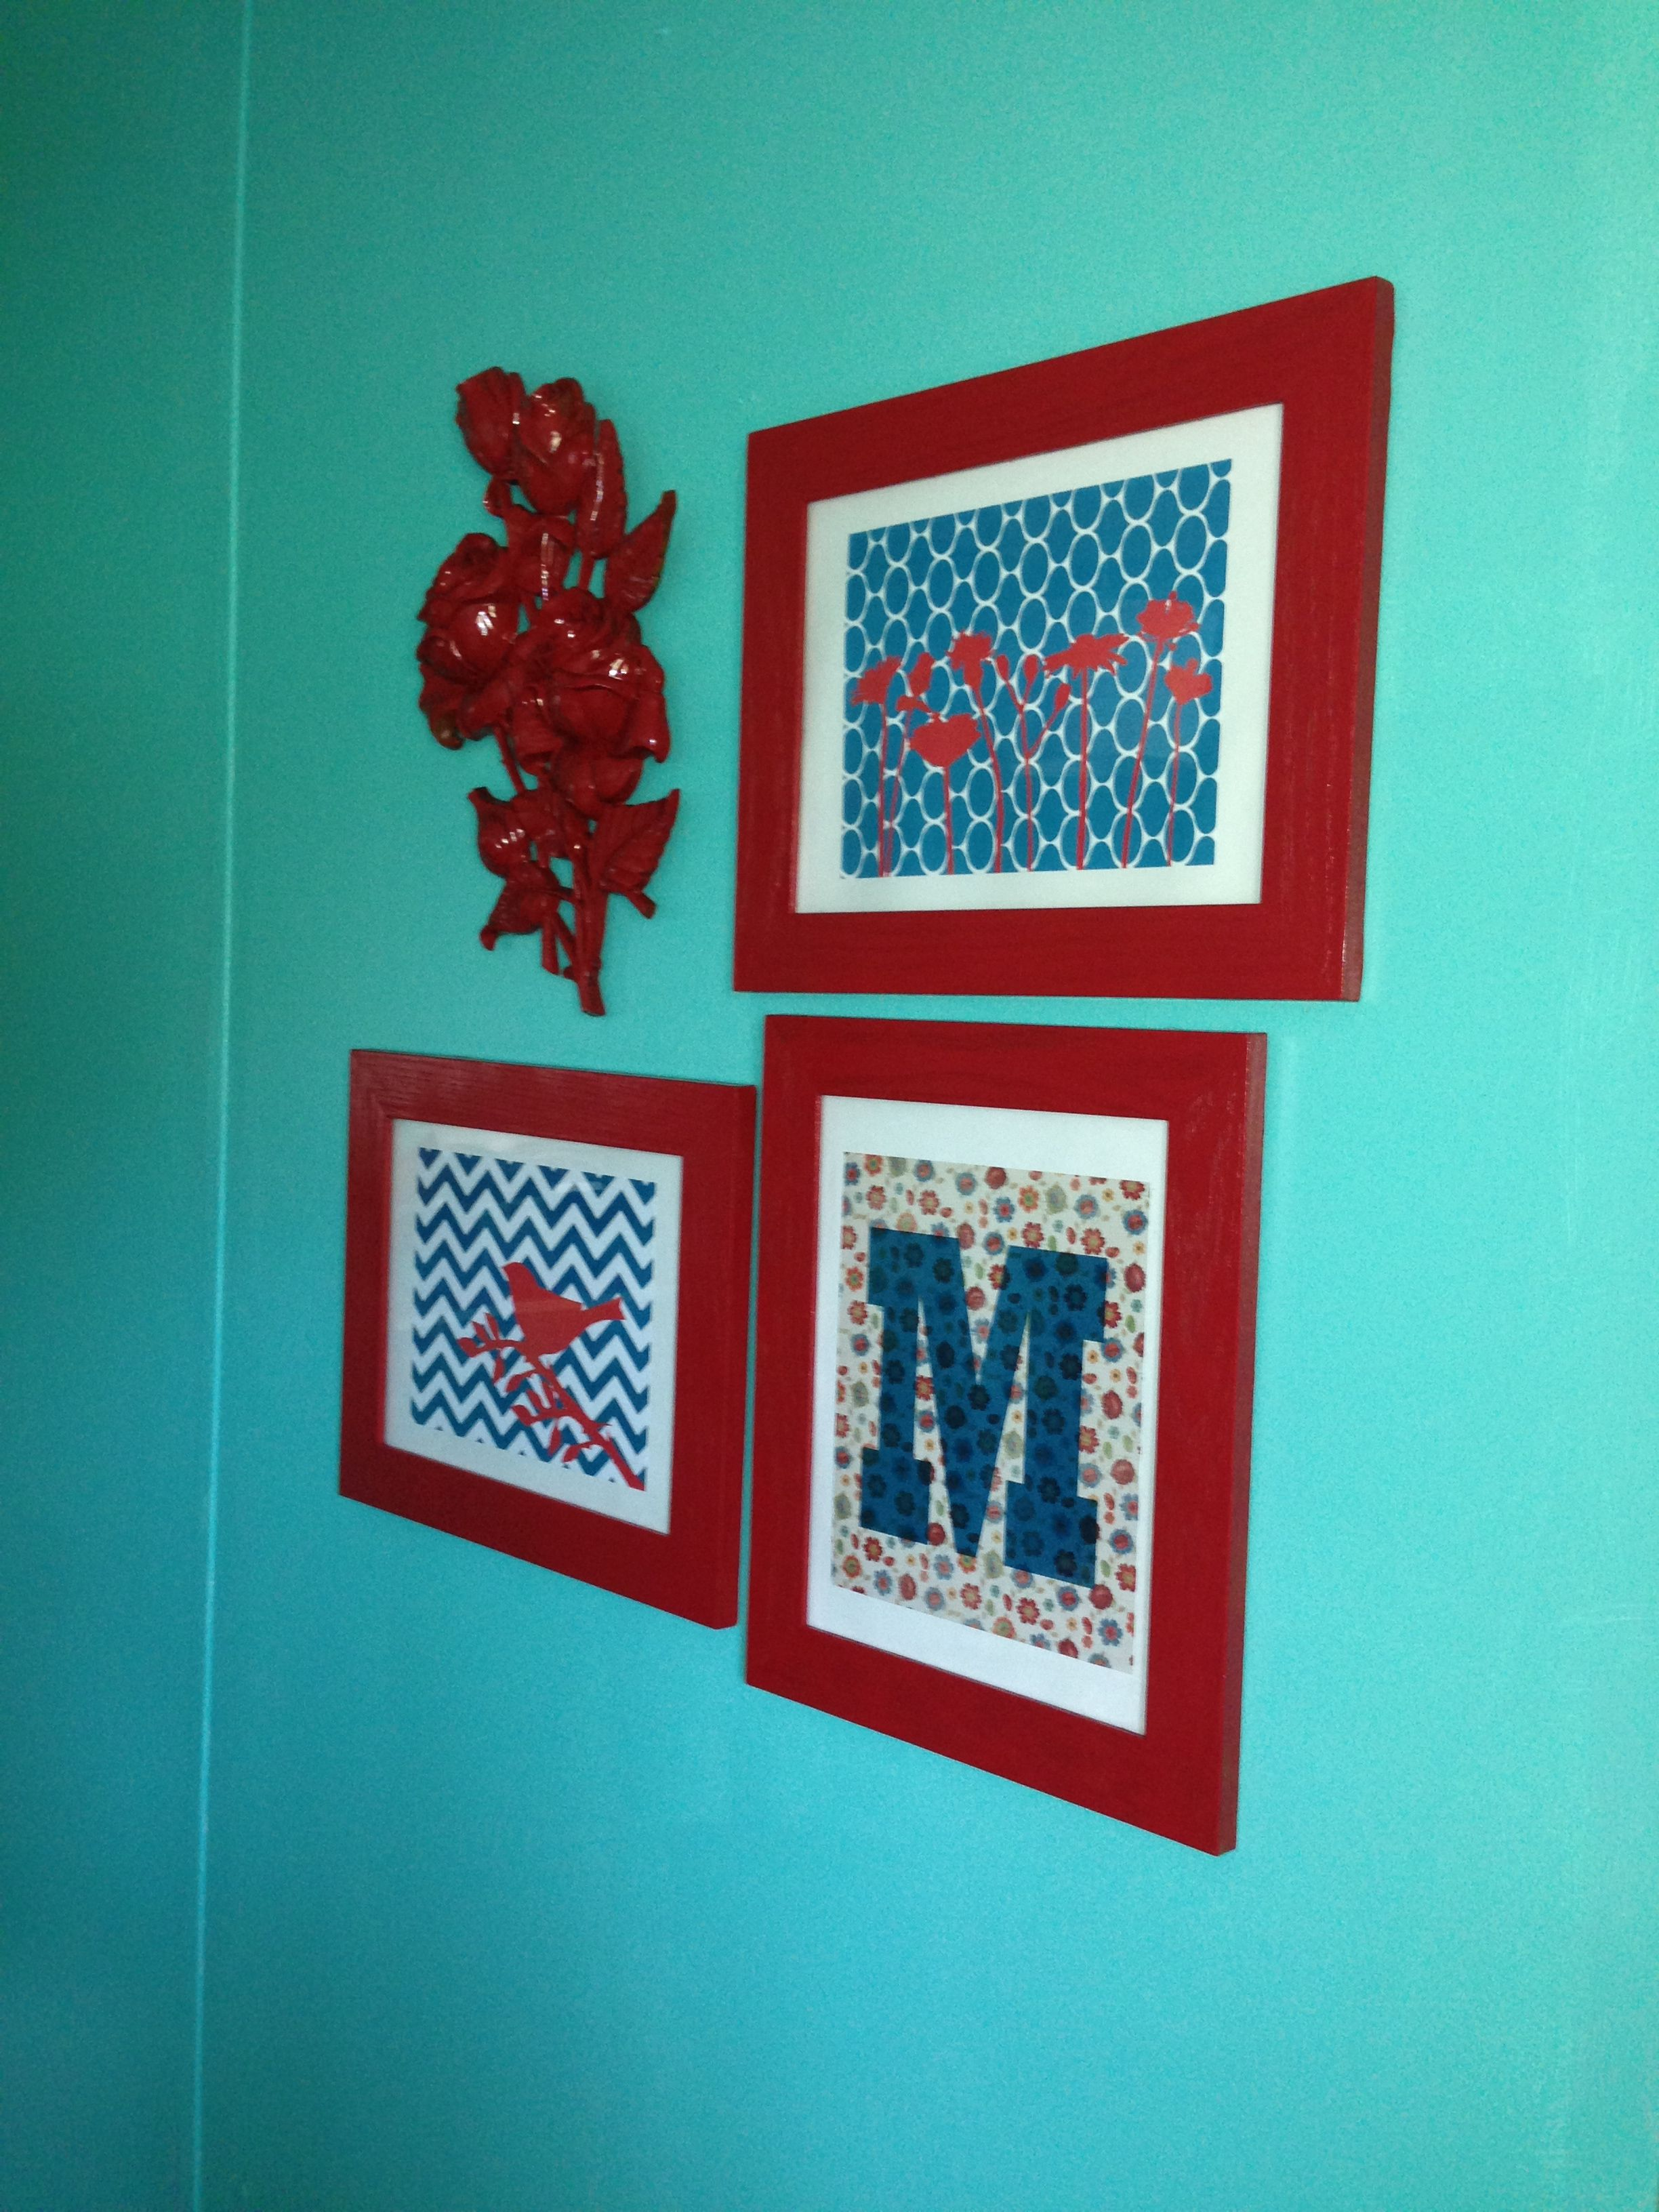 Teal and red wall decor | Home decor | Pinterest | Red wall decor ...